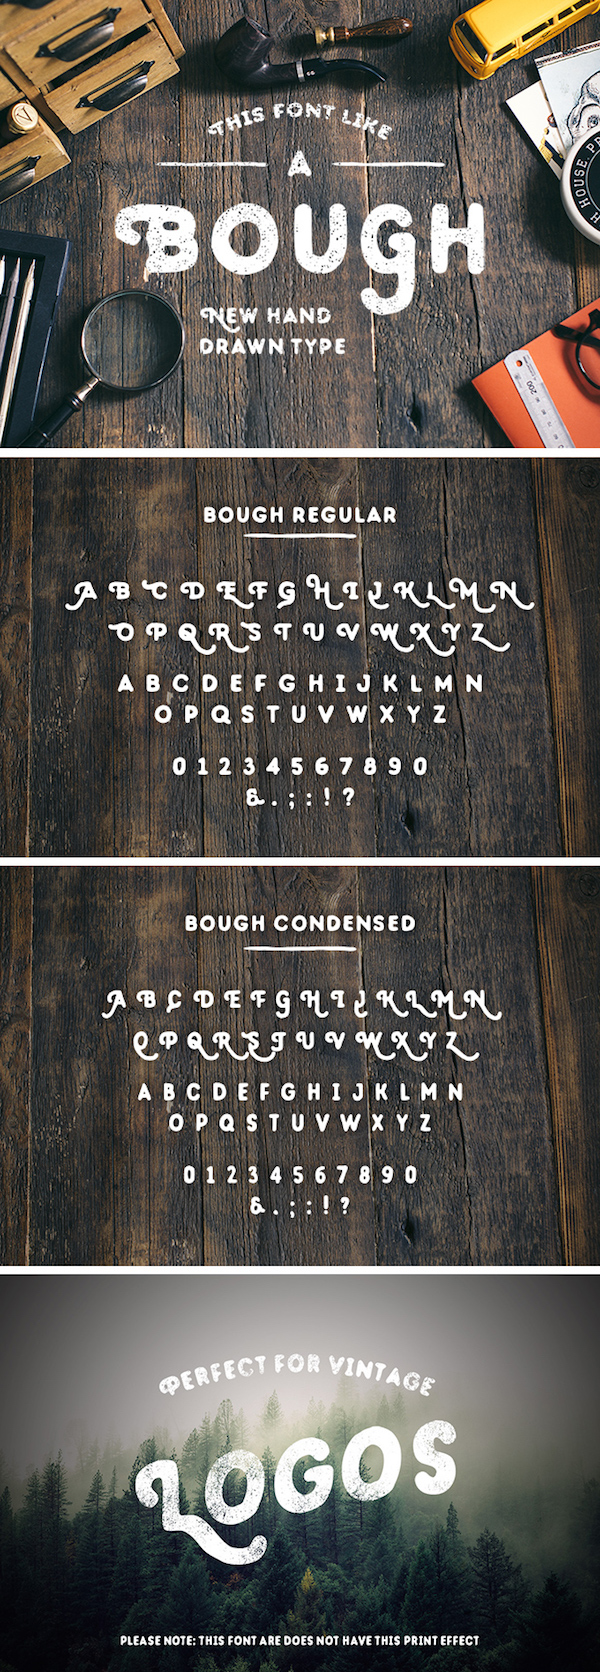 Drawn typeface handwriting Typeface Free 20 Bough: Fonts